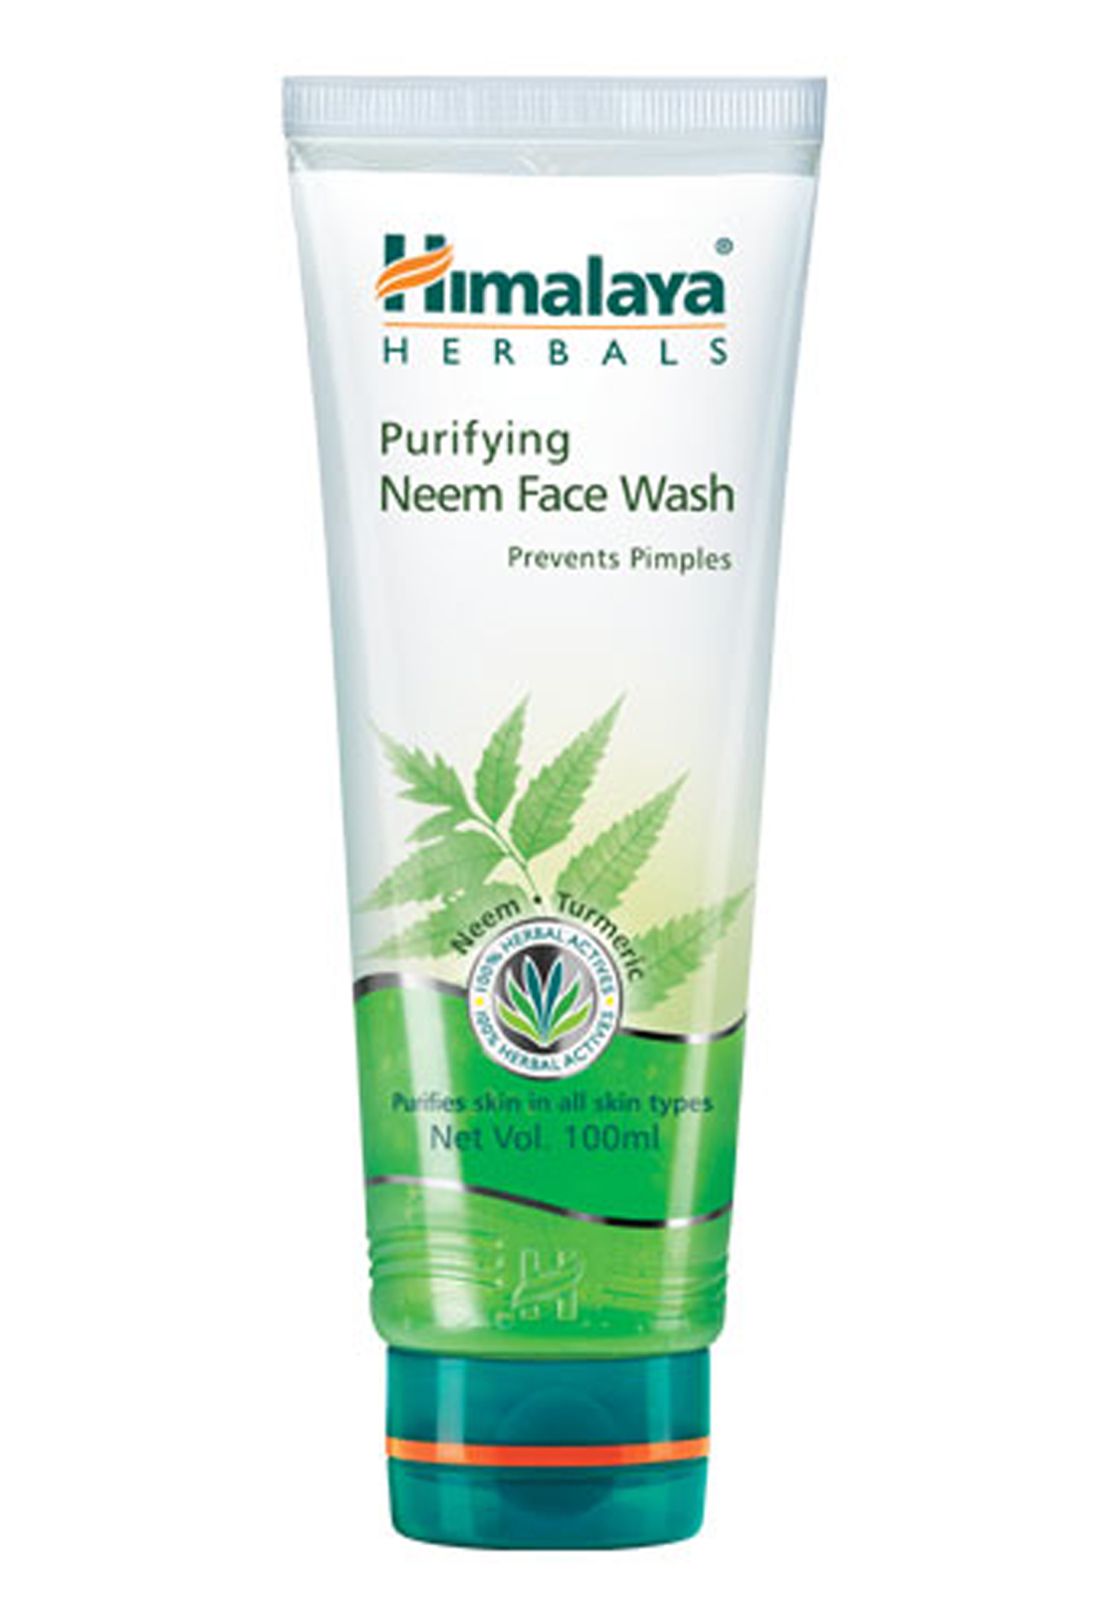 Himalaya Purifying Neem Face Wash Prevents Pimples 100ml